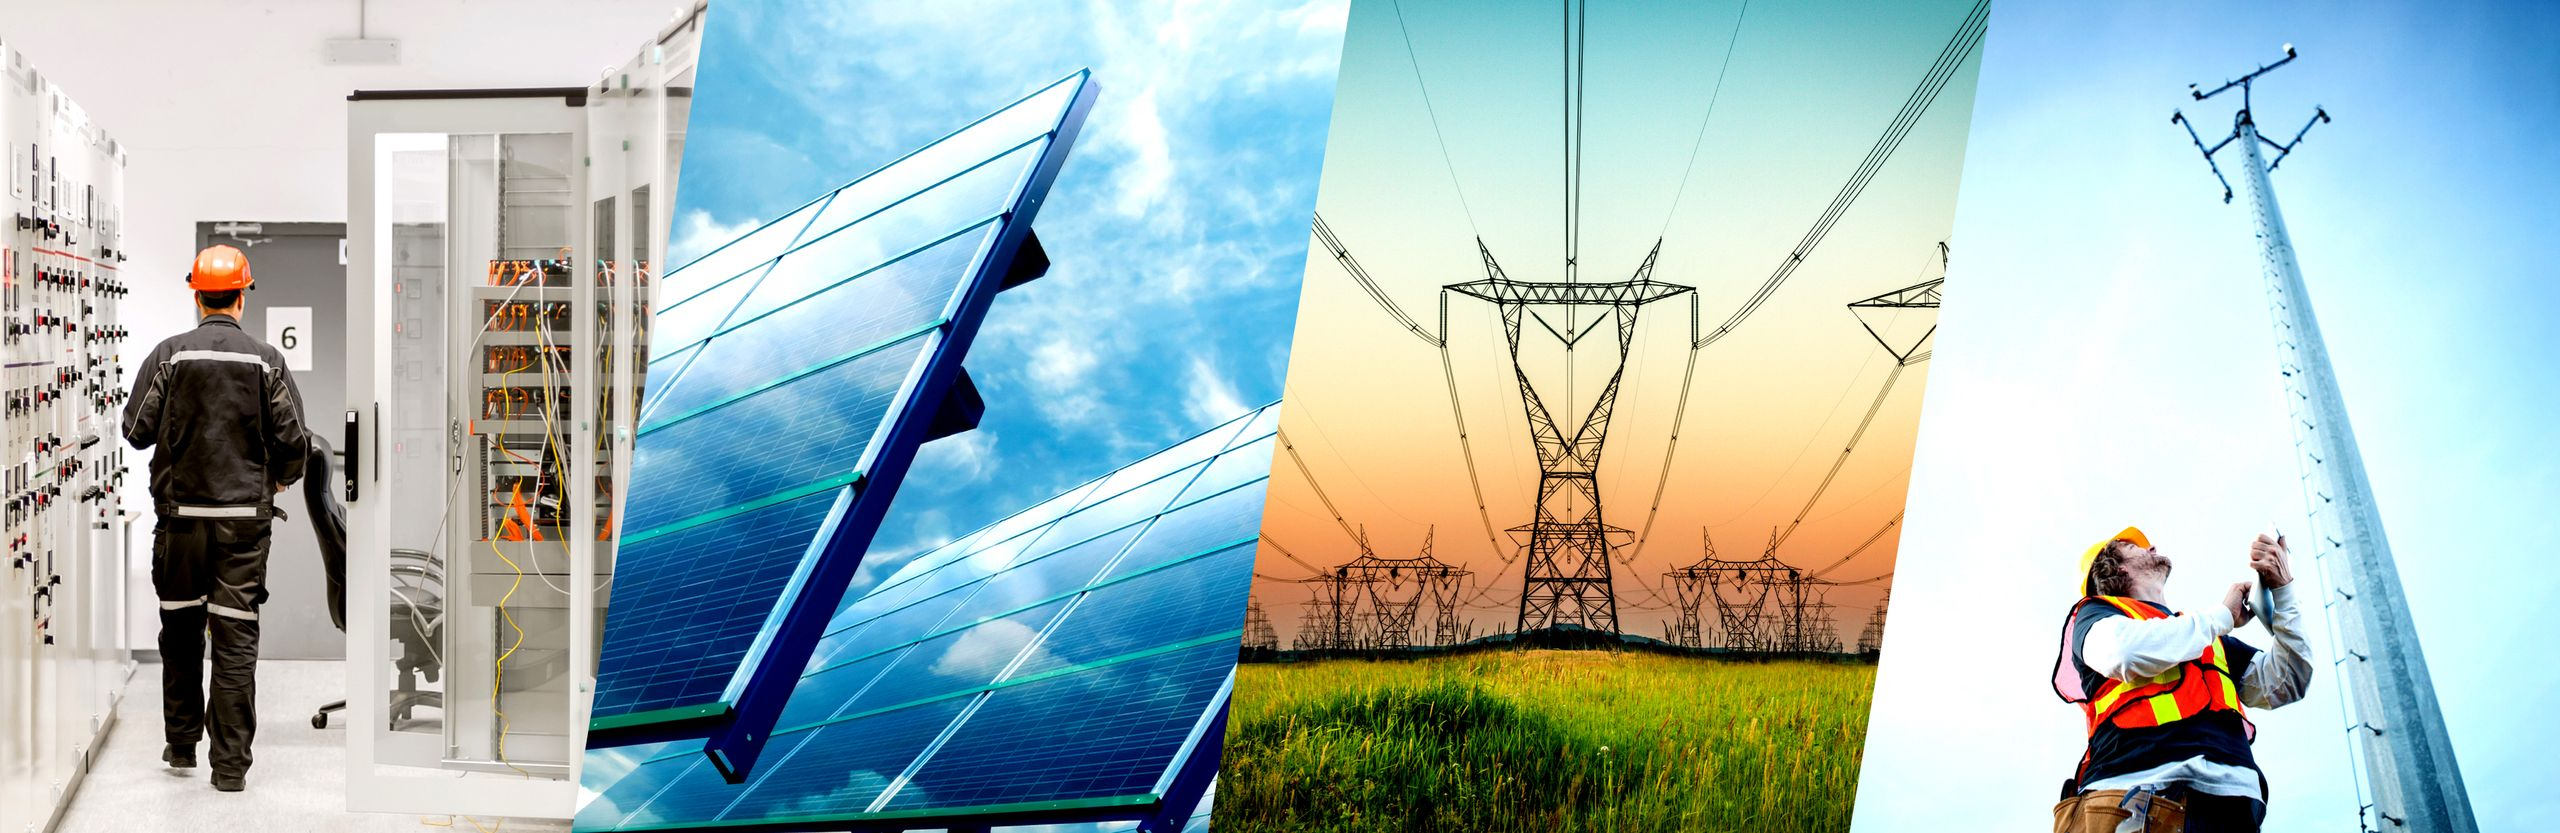 Background image divided into four panels , panel one shows an electrician  wearing an orange helmet, second panel shows a blue solar panel, third panel shows a power tower, fourth panel shows blonde man wearing yellow hard hat l holding a clipart, looking up to inspect an electric tower